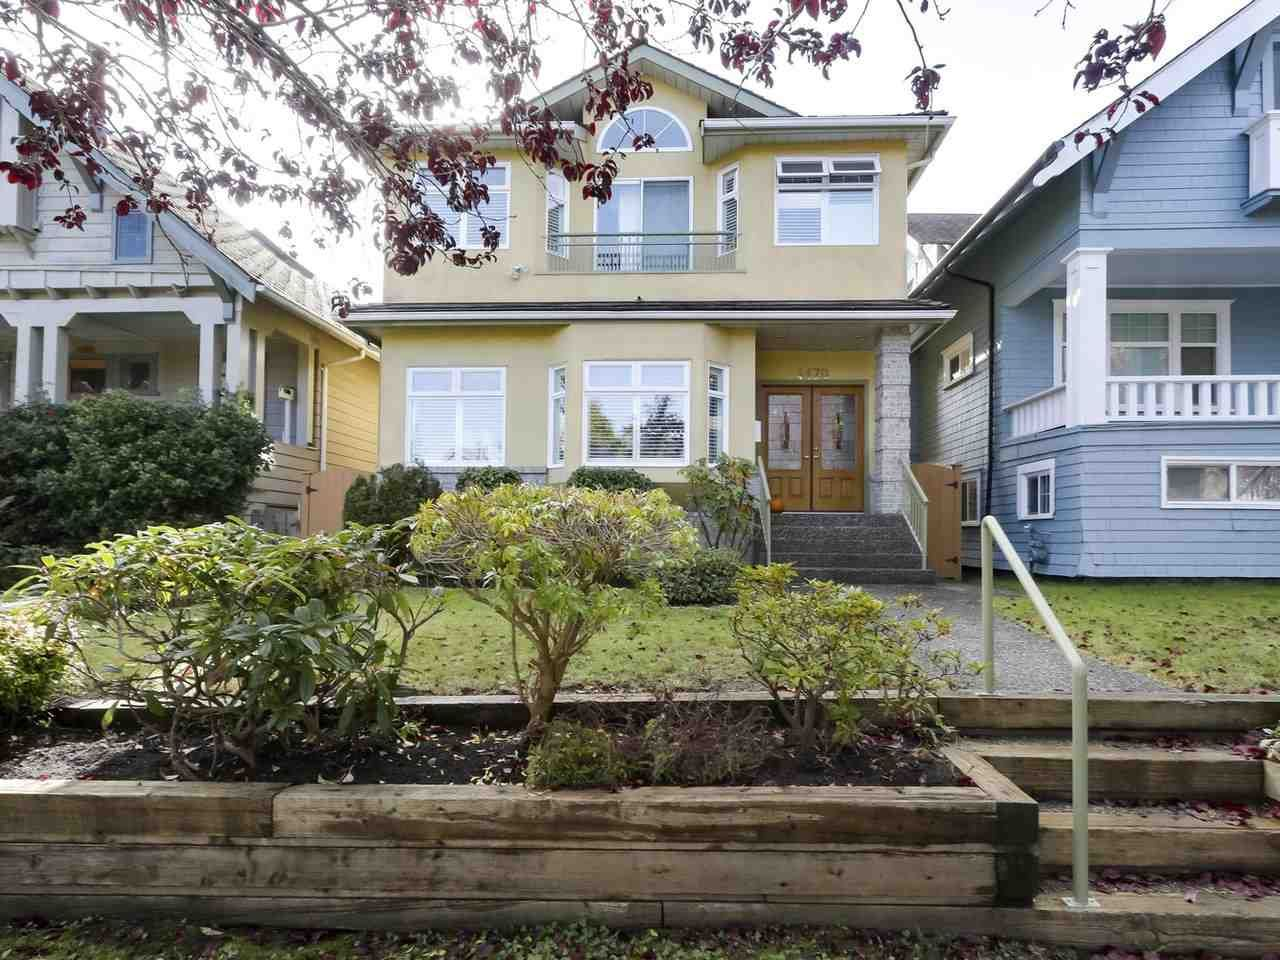 Main Photo: 4470 W 12TH Avenue in Vancouver: Point Grey House for sale (Vancouver West)  : MLS®# R2415684